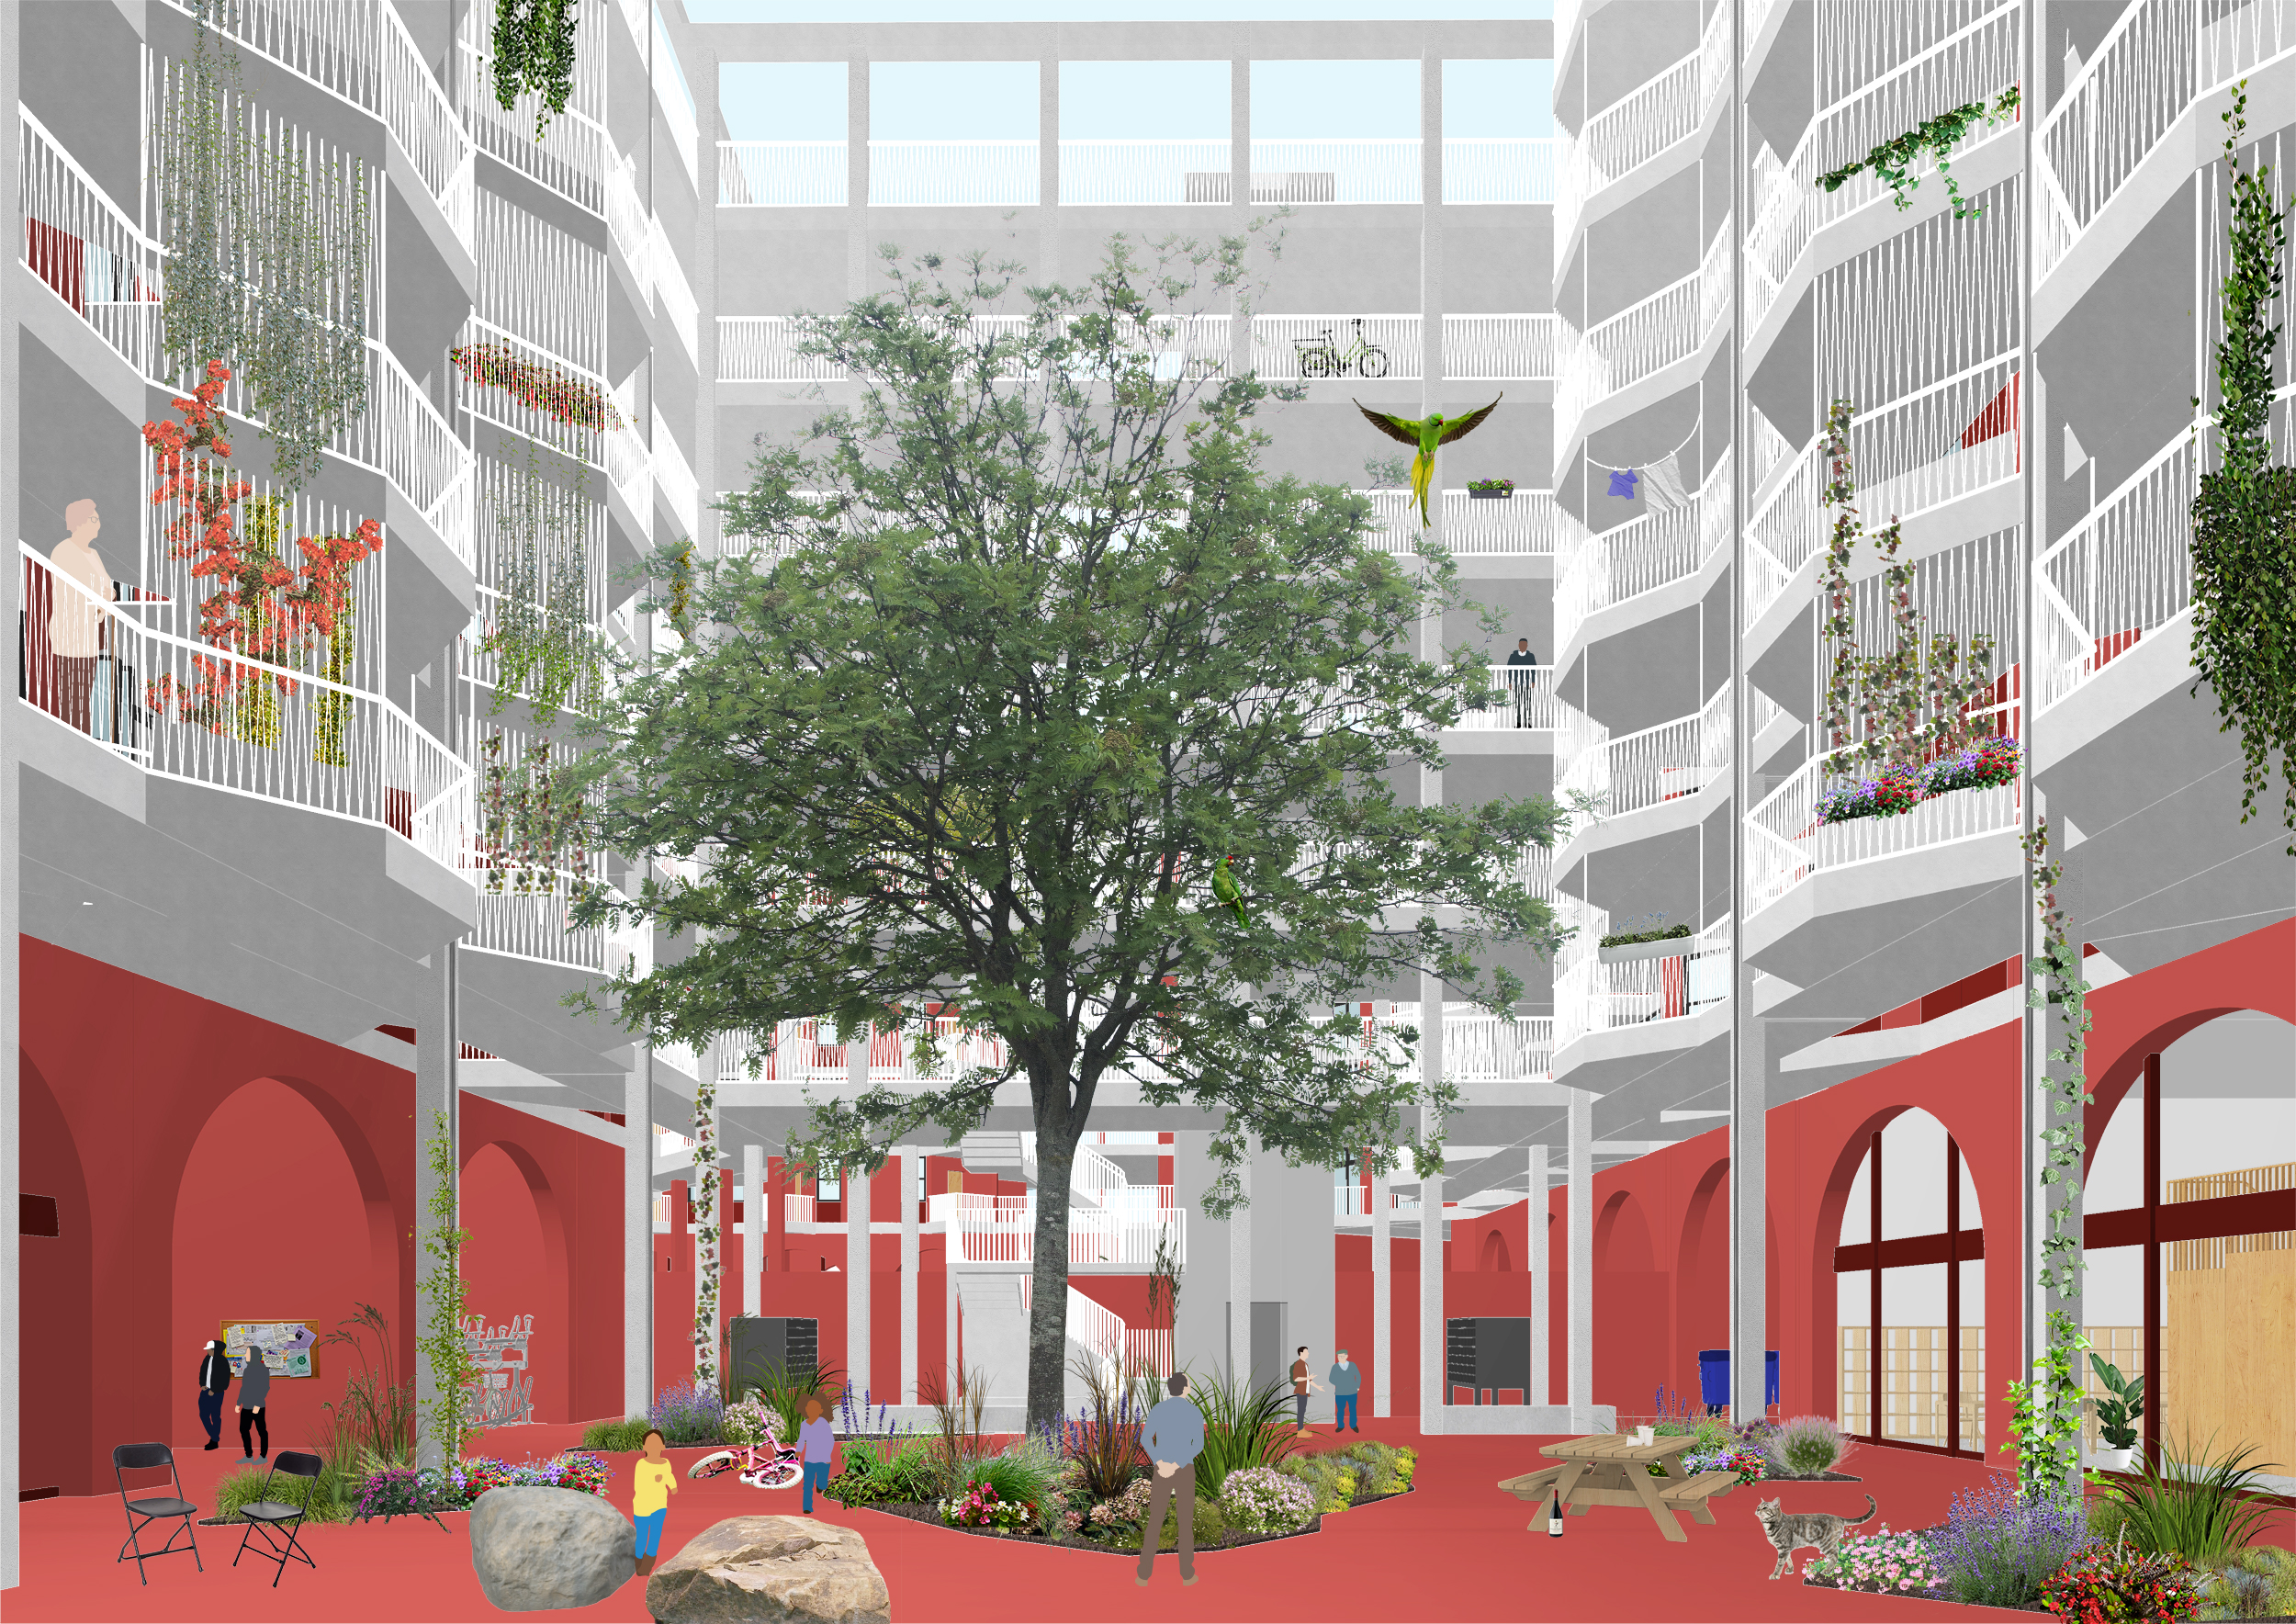 Residential courtyards encourage connection